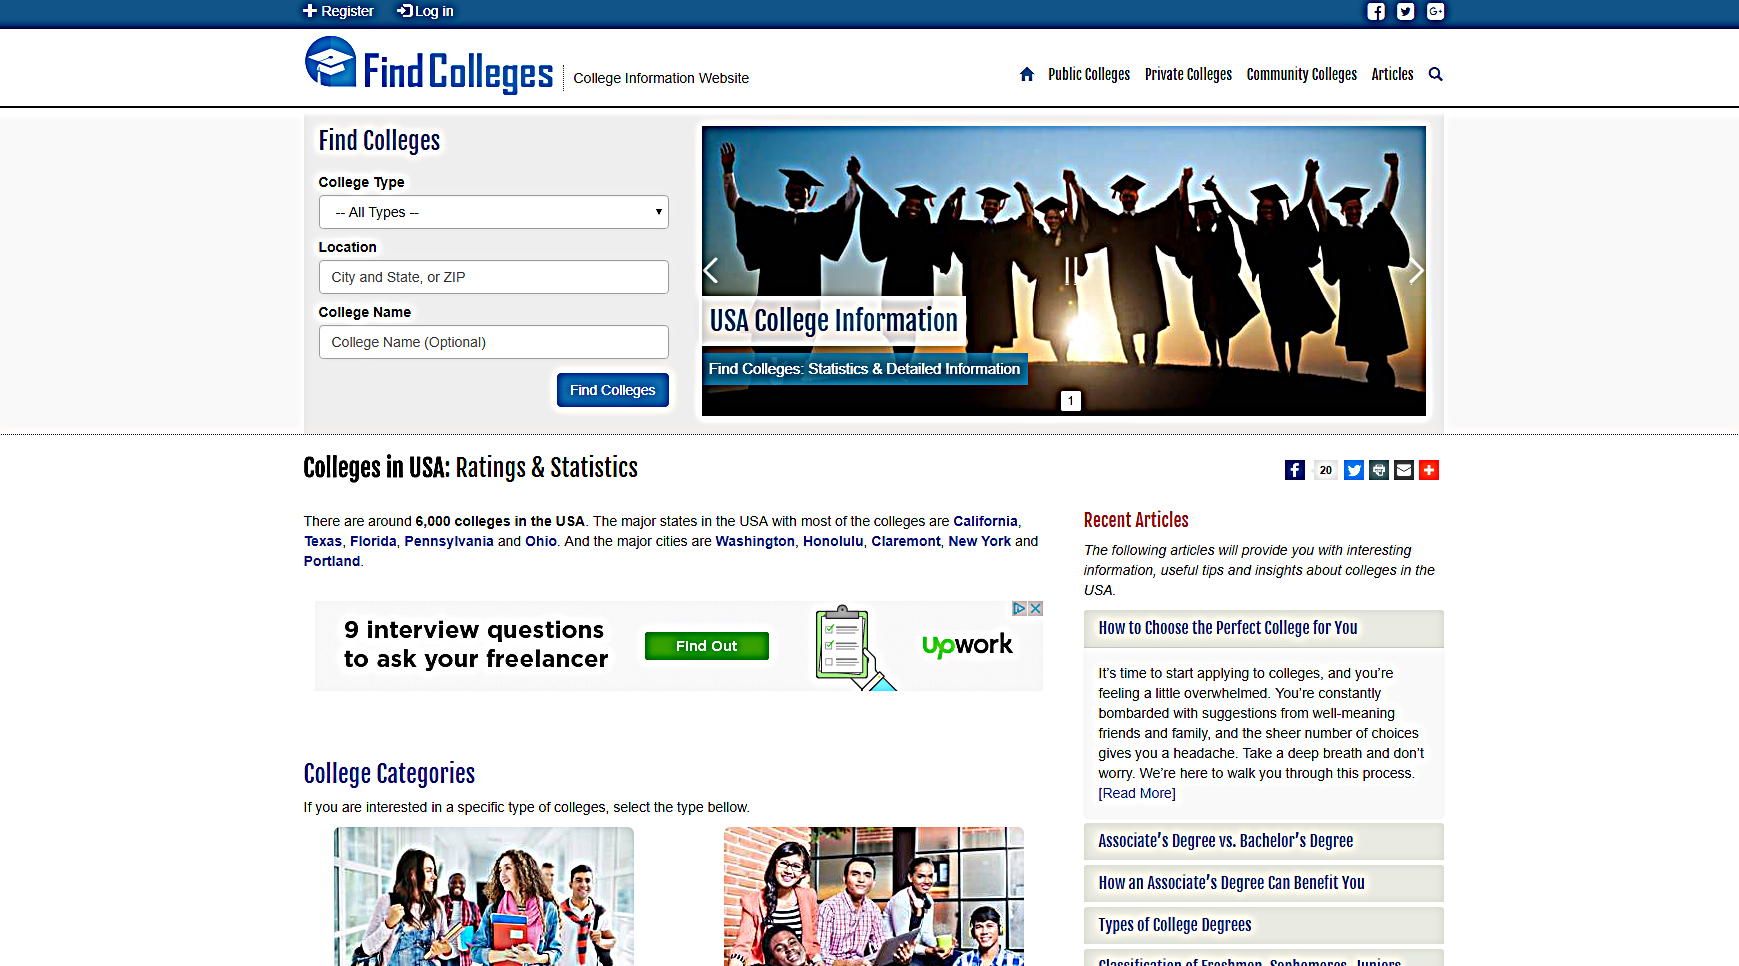 Find Colleges